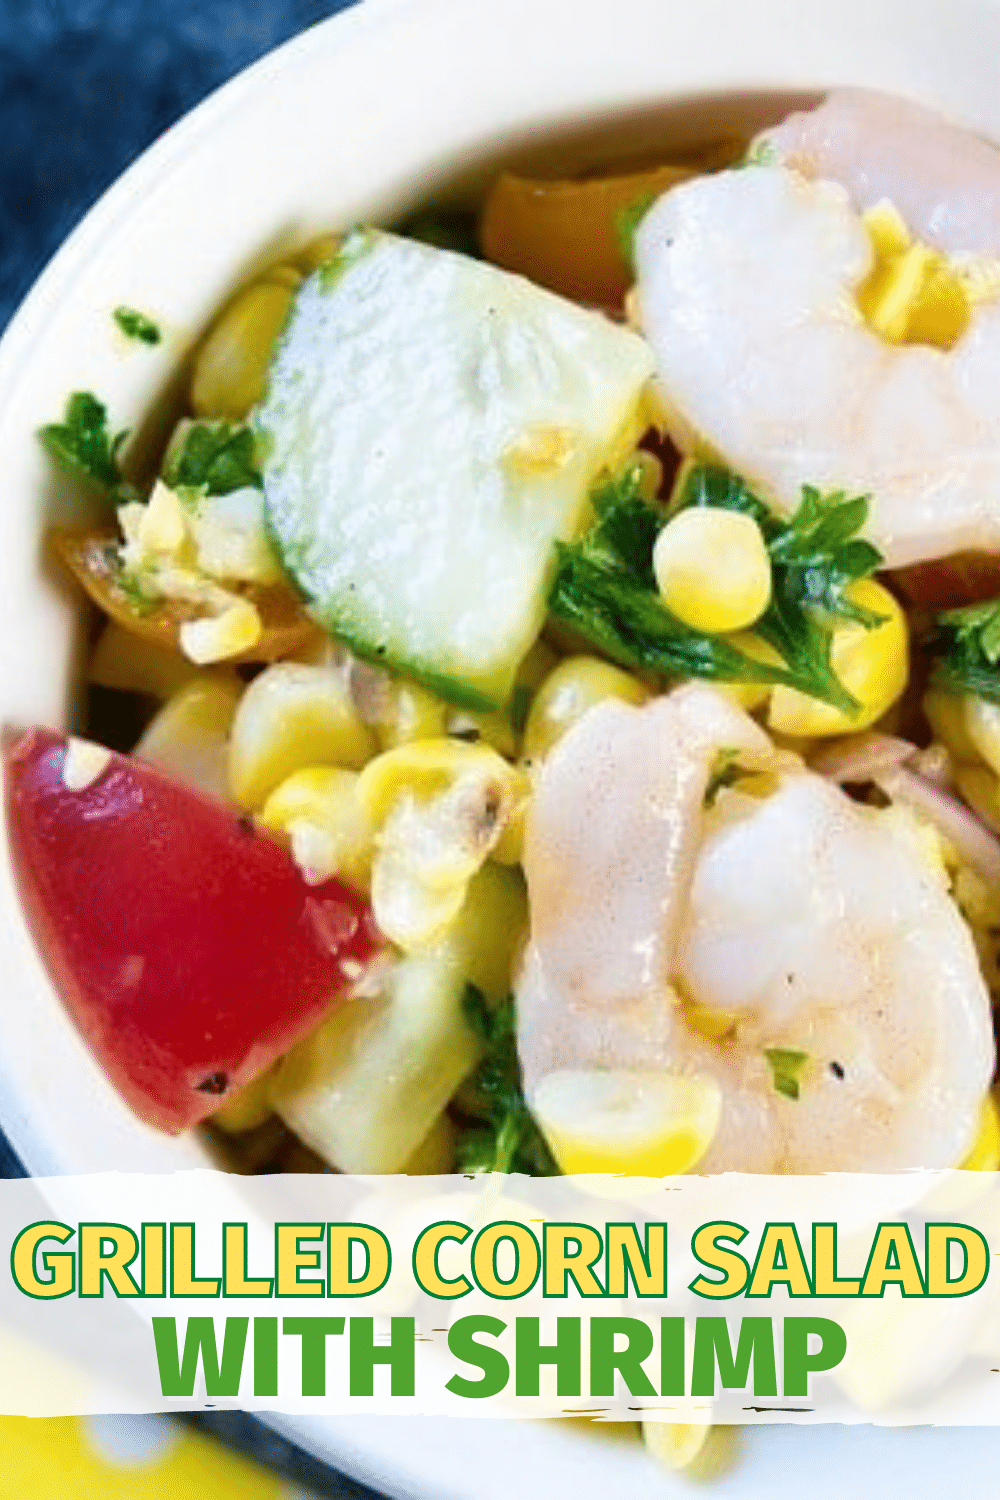 This grilled corn salad is super easy to make and full of flavors the whole family will love. It's the perfect summer dish. #grilledcorn #salad #corn #sidedish via @wondermomwannab